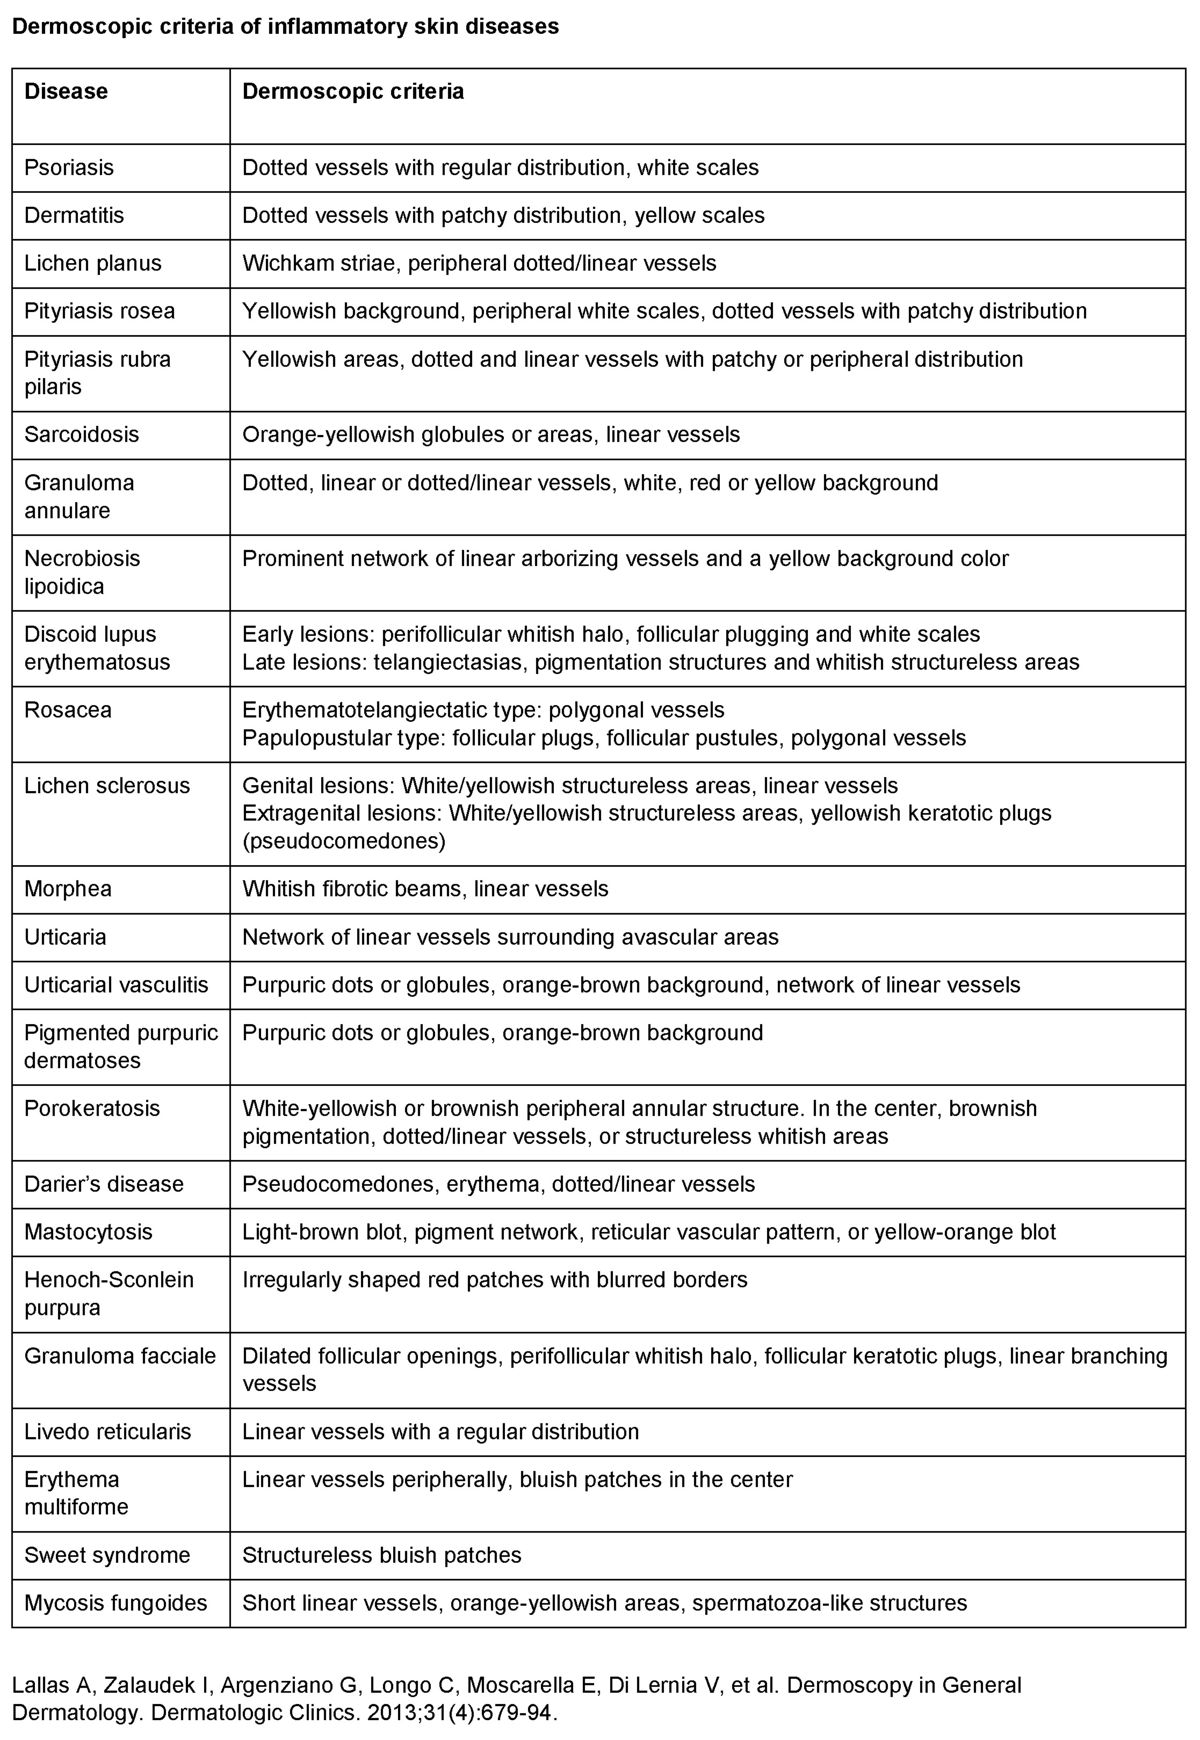 Dermoscopic criteria of inflammatory skin diseases.jpg